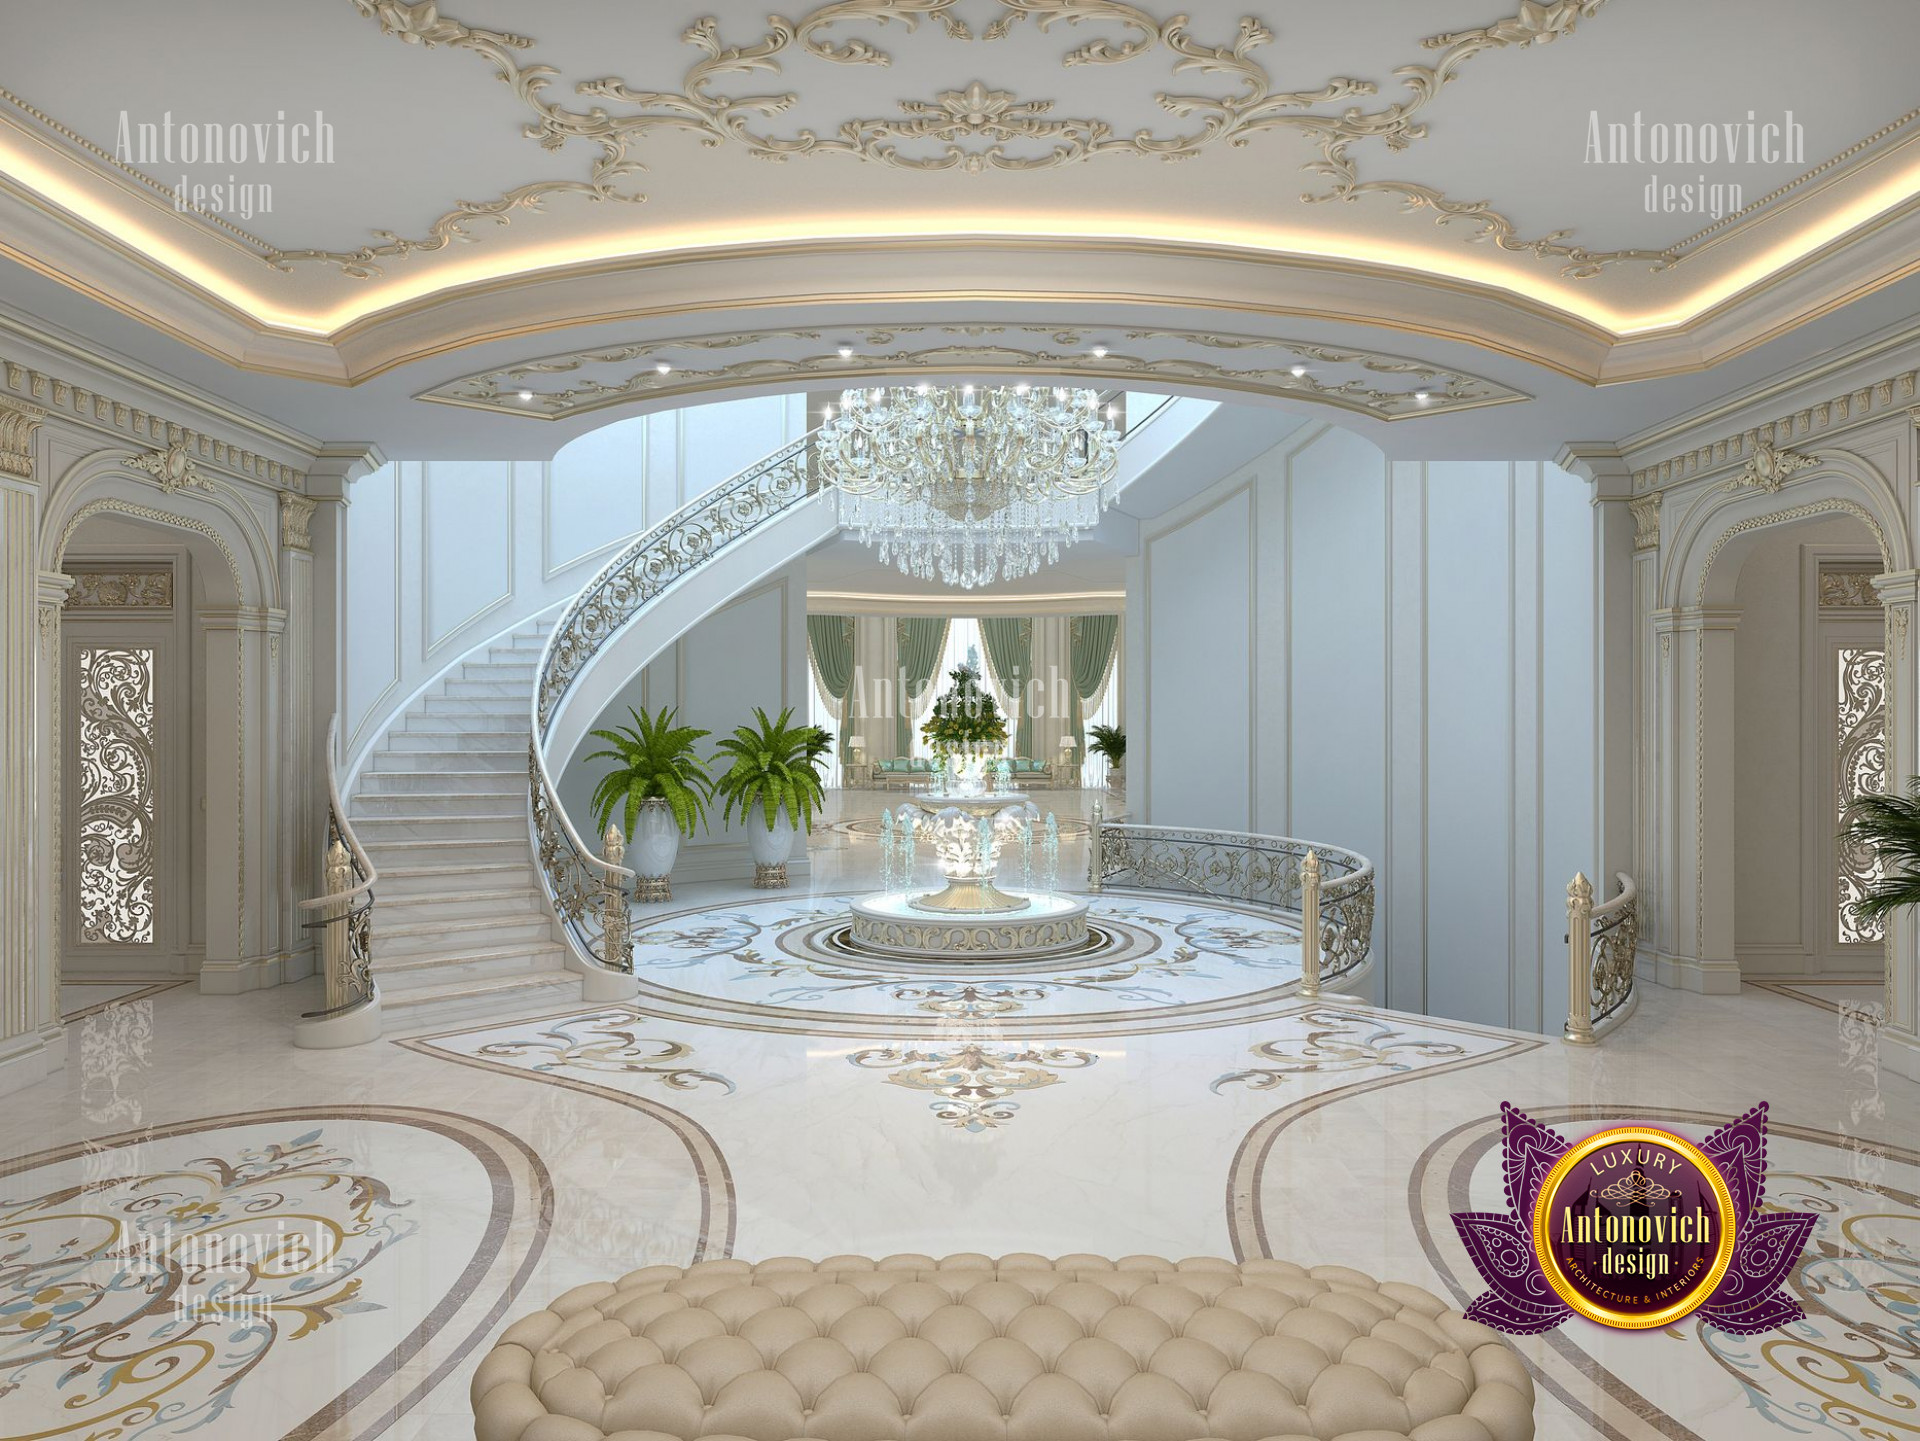 Ions Interior Design Dubai luxury antonovich design, in uae, dubai - buildeey